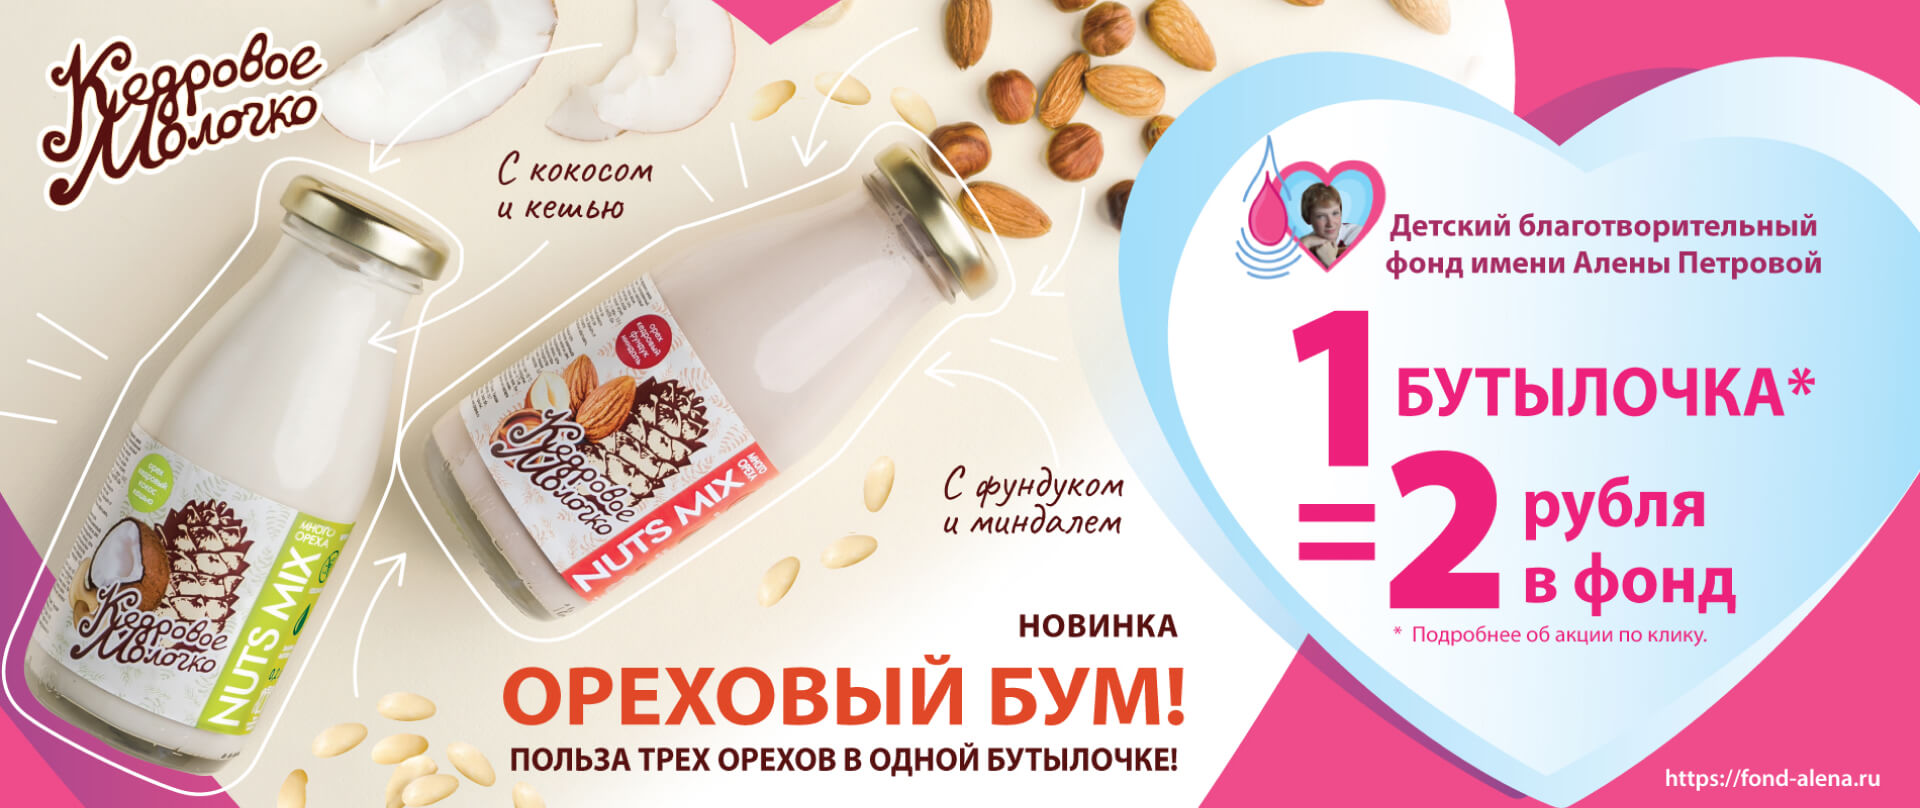 http://cedarmilk.ru/wp-content/uploads/2020/08/hero-slider-2.jpg